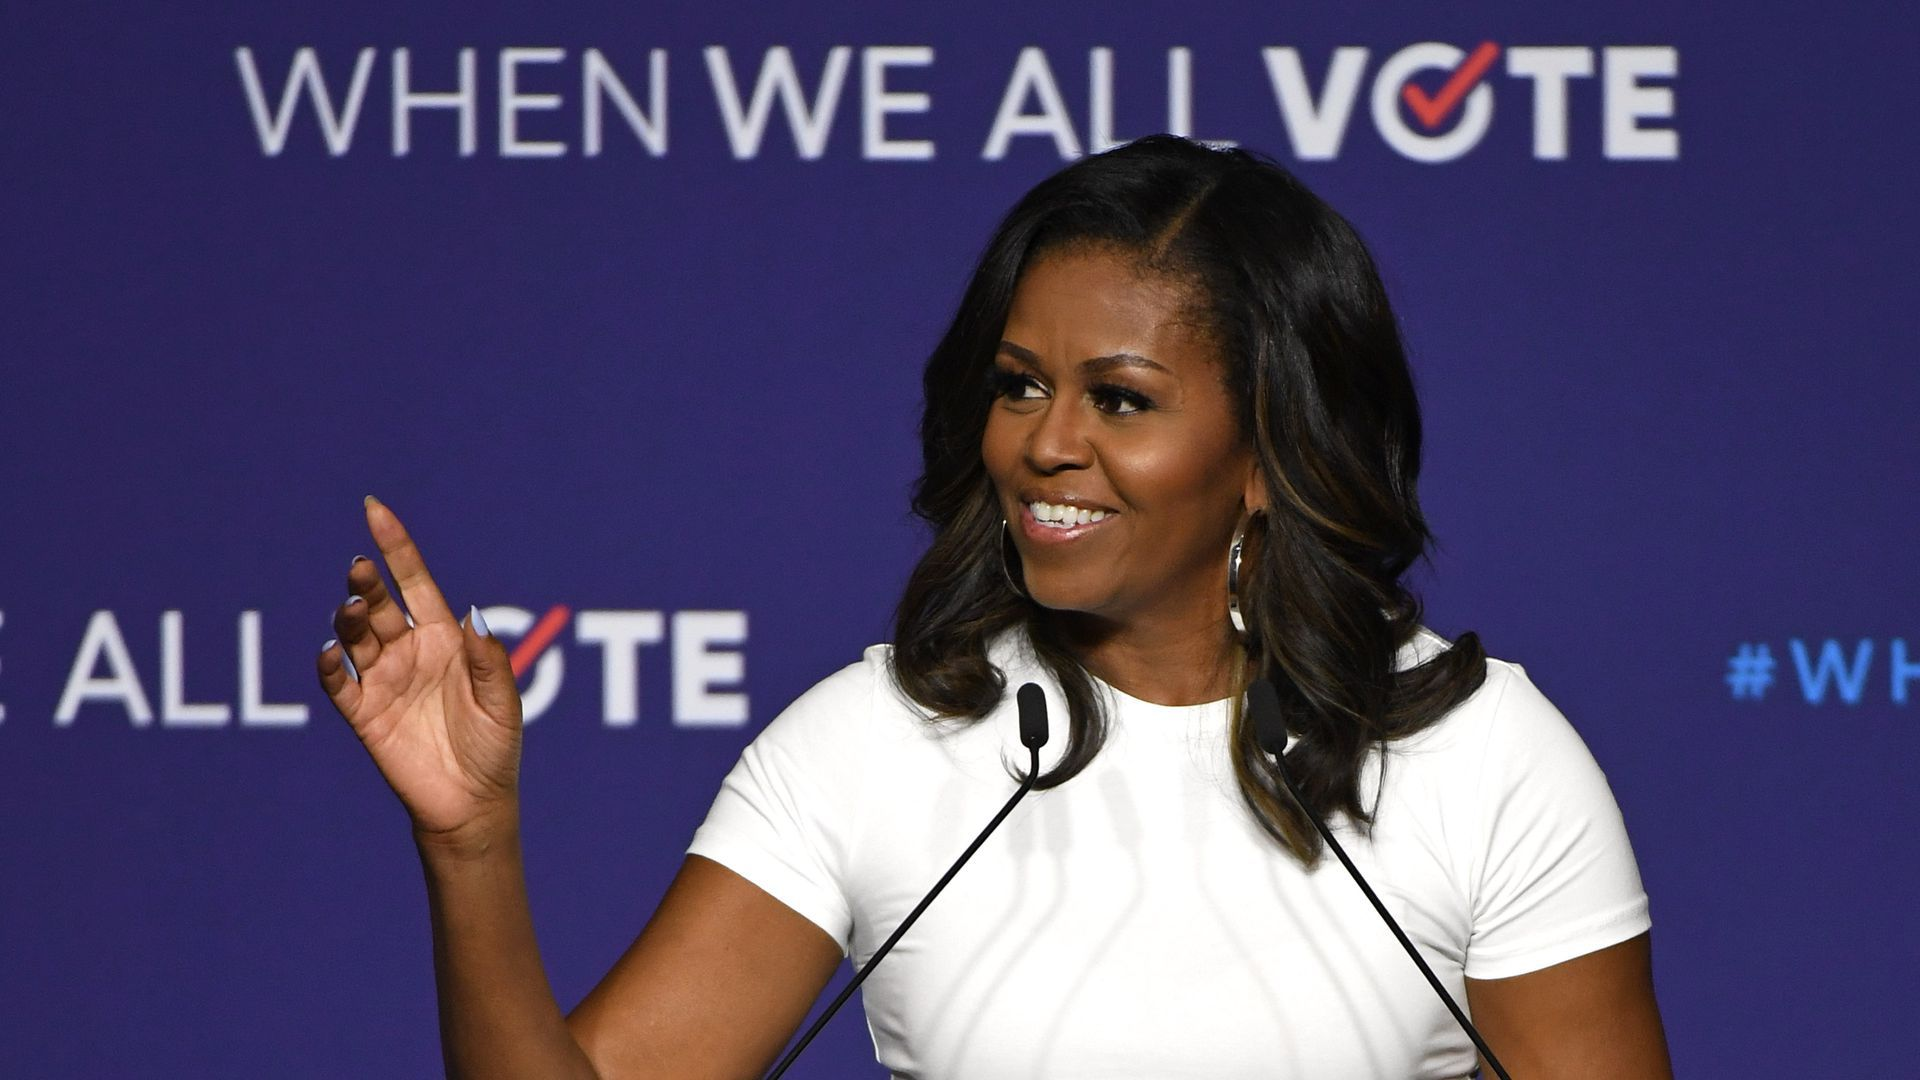 Michelle Obama at a speaking engagement